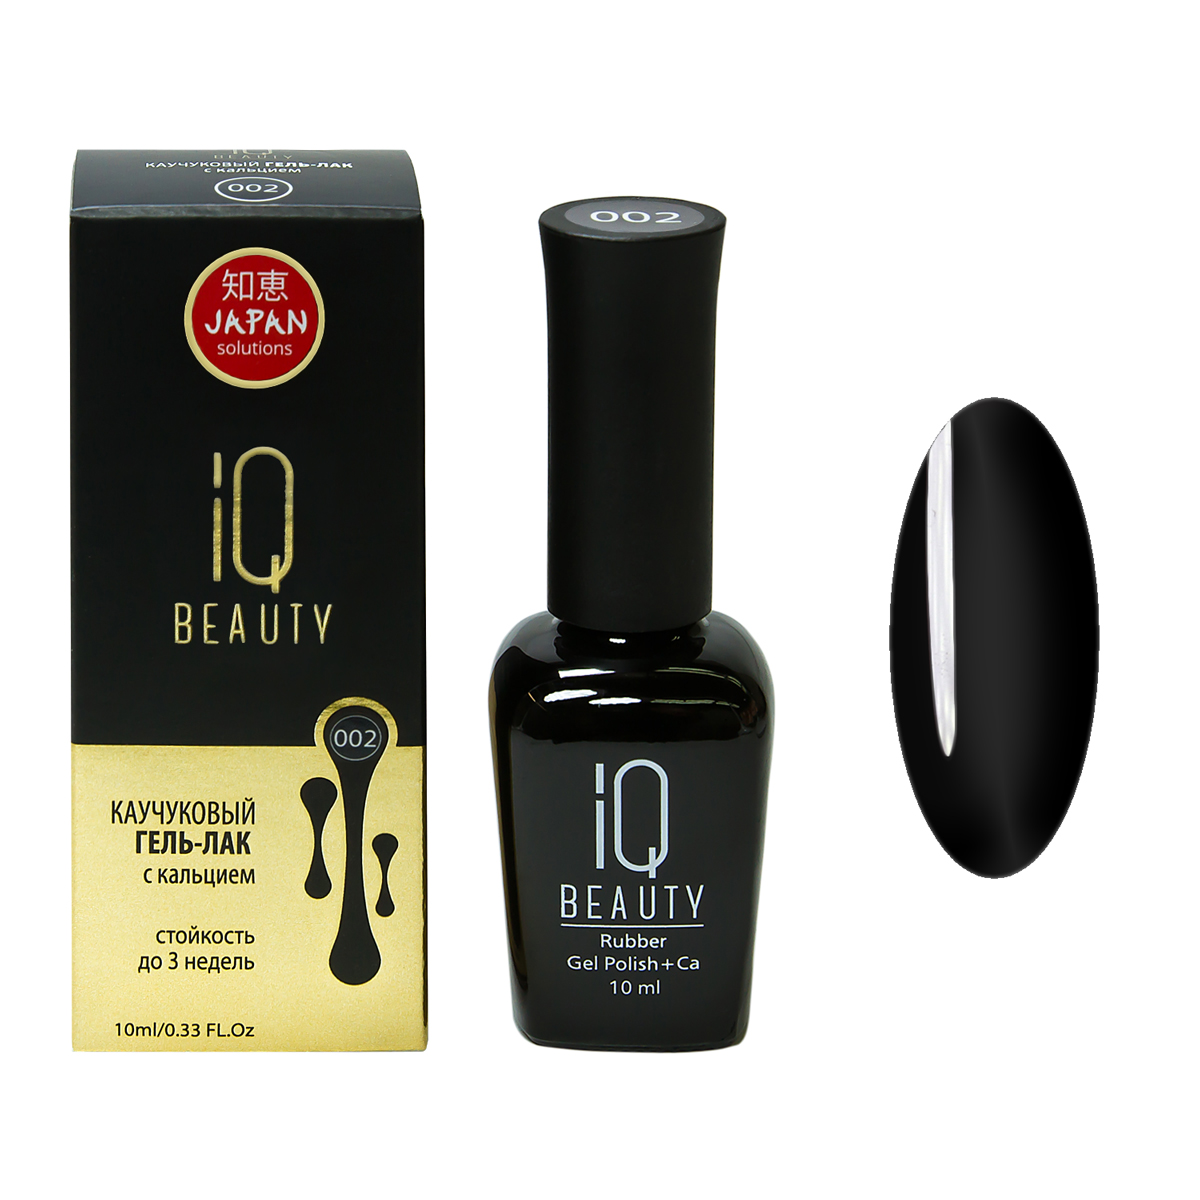 цена на Гель-лак IQ BEAUTY Каучуковый с кальцием